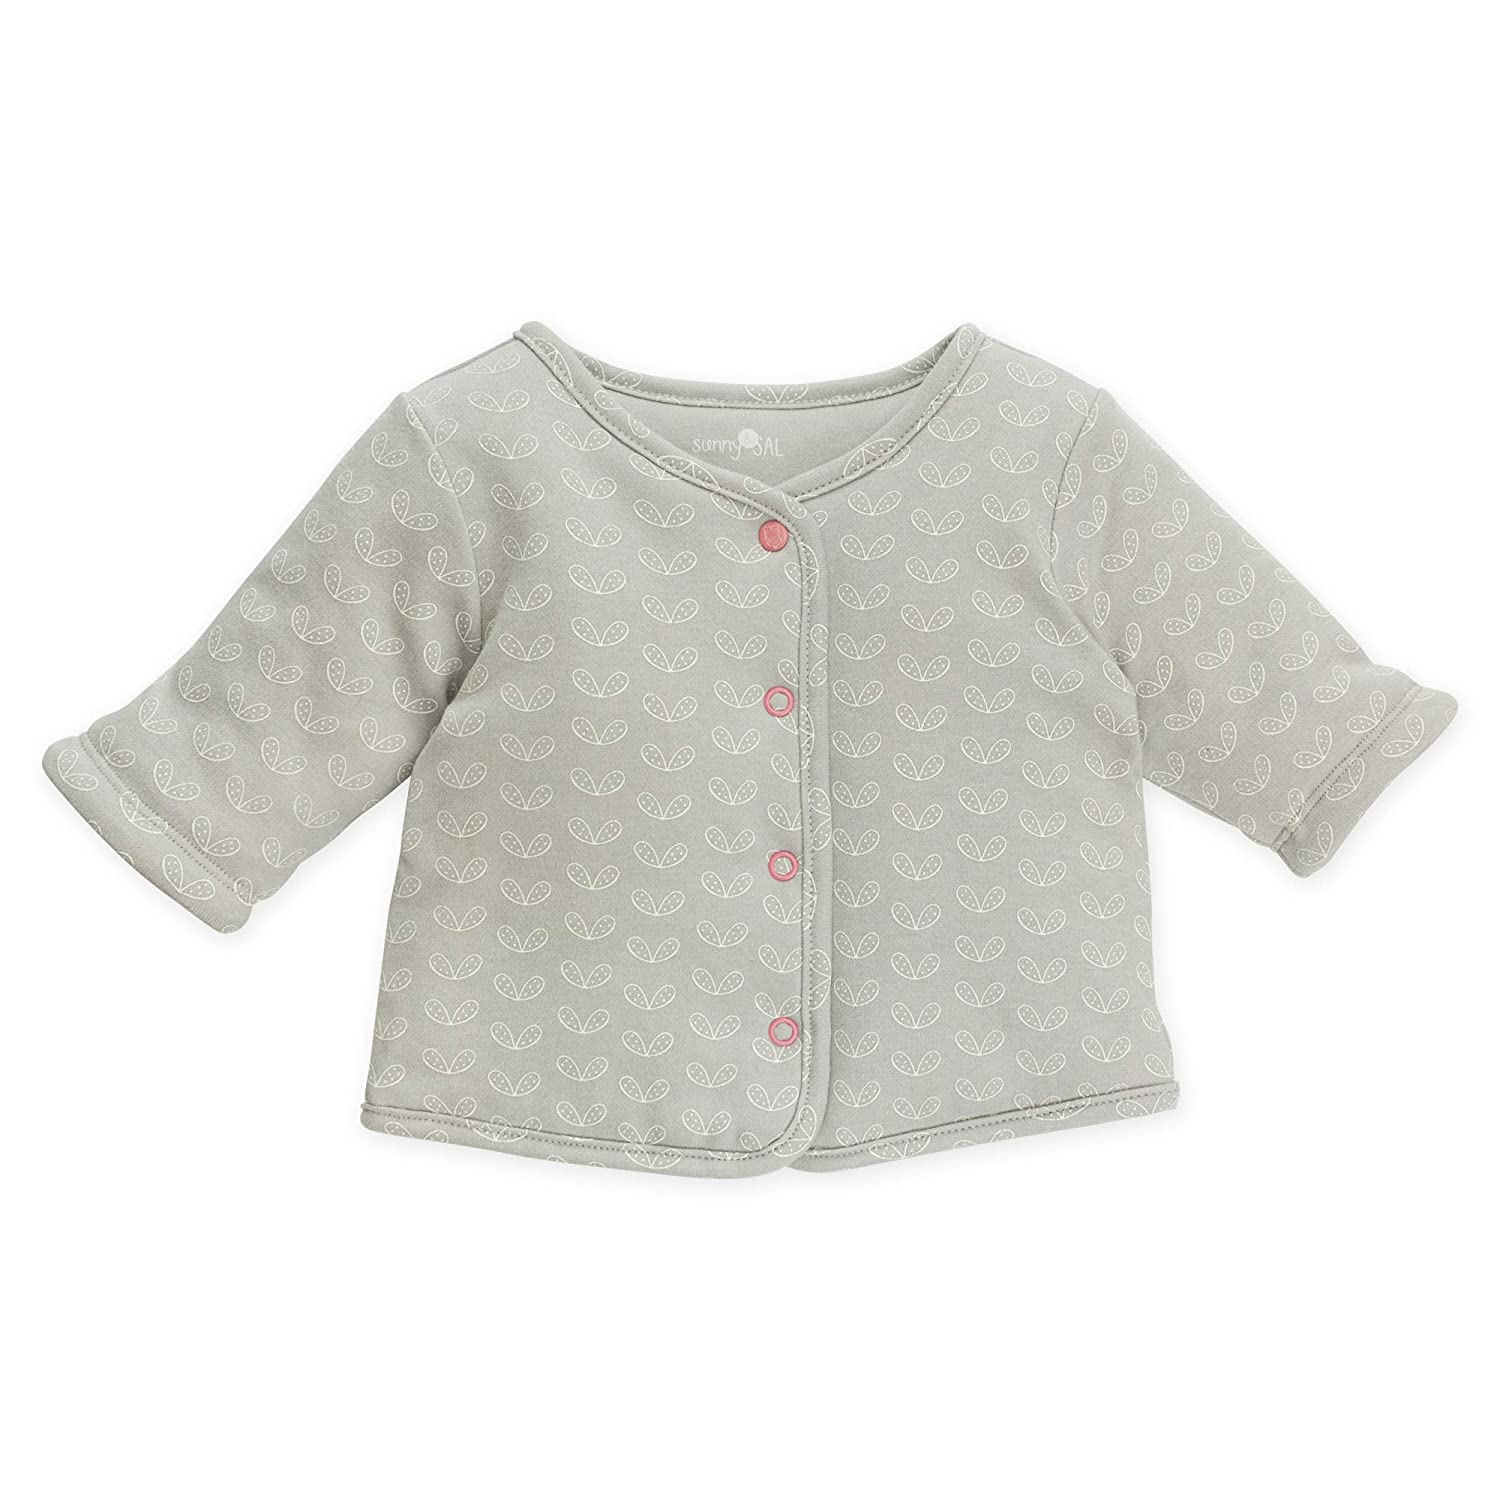 7f33cf950921 Amazon.com  Baby Girl Cardigan